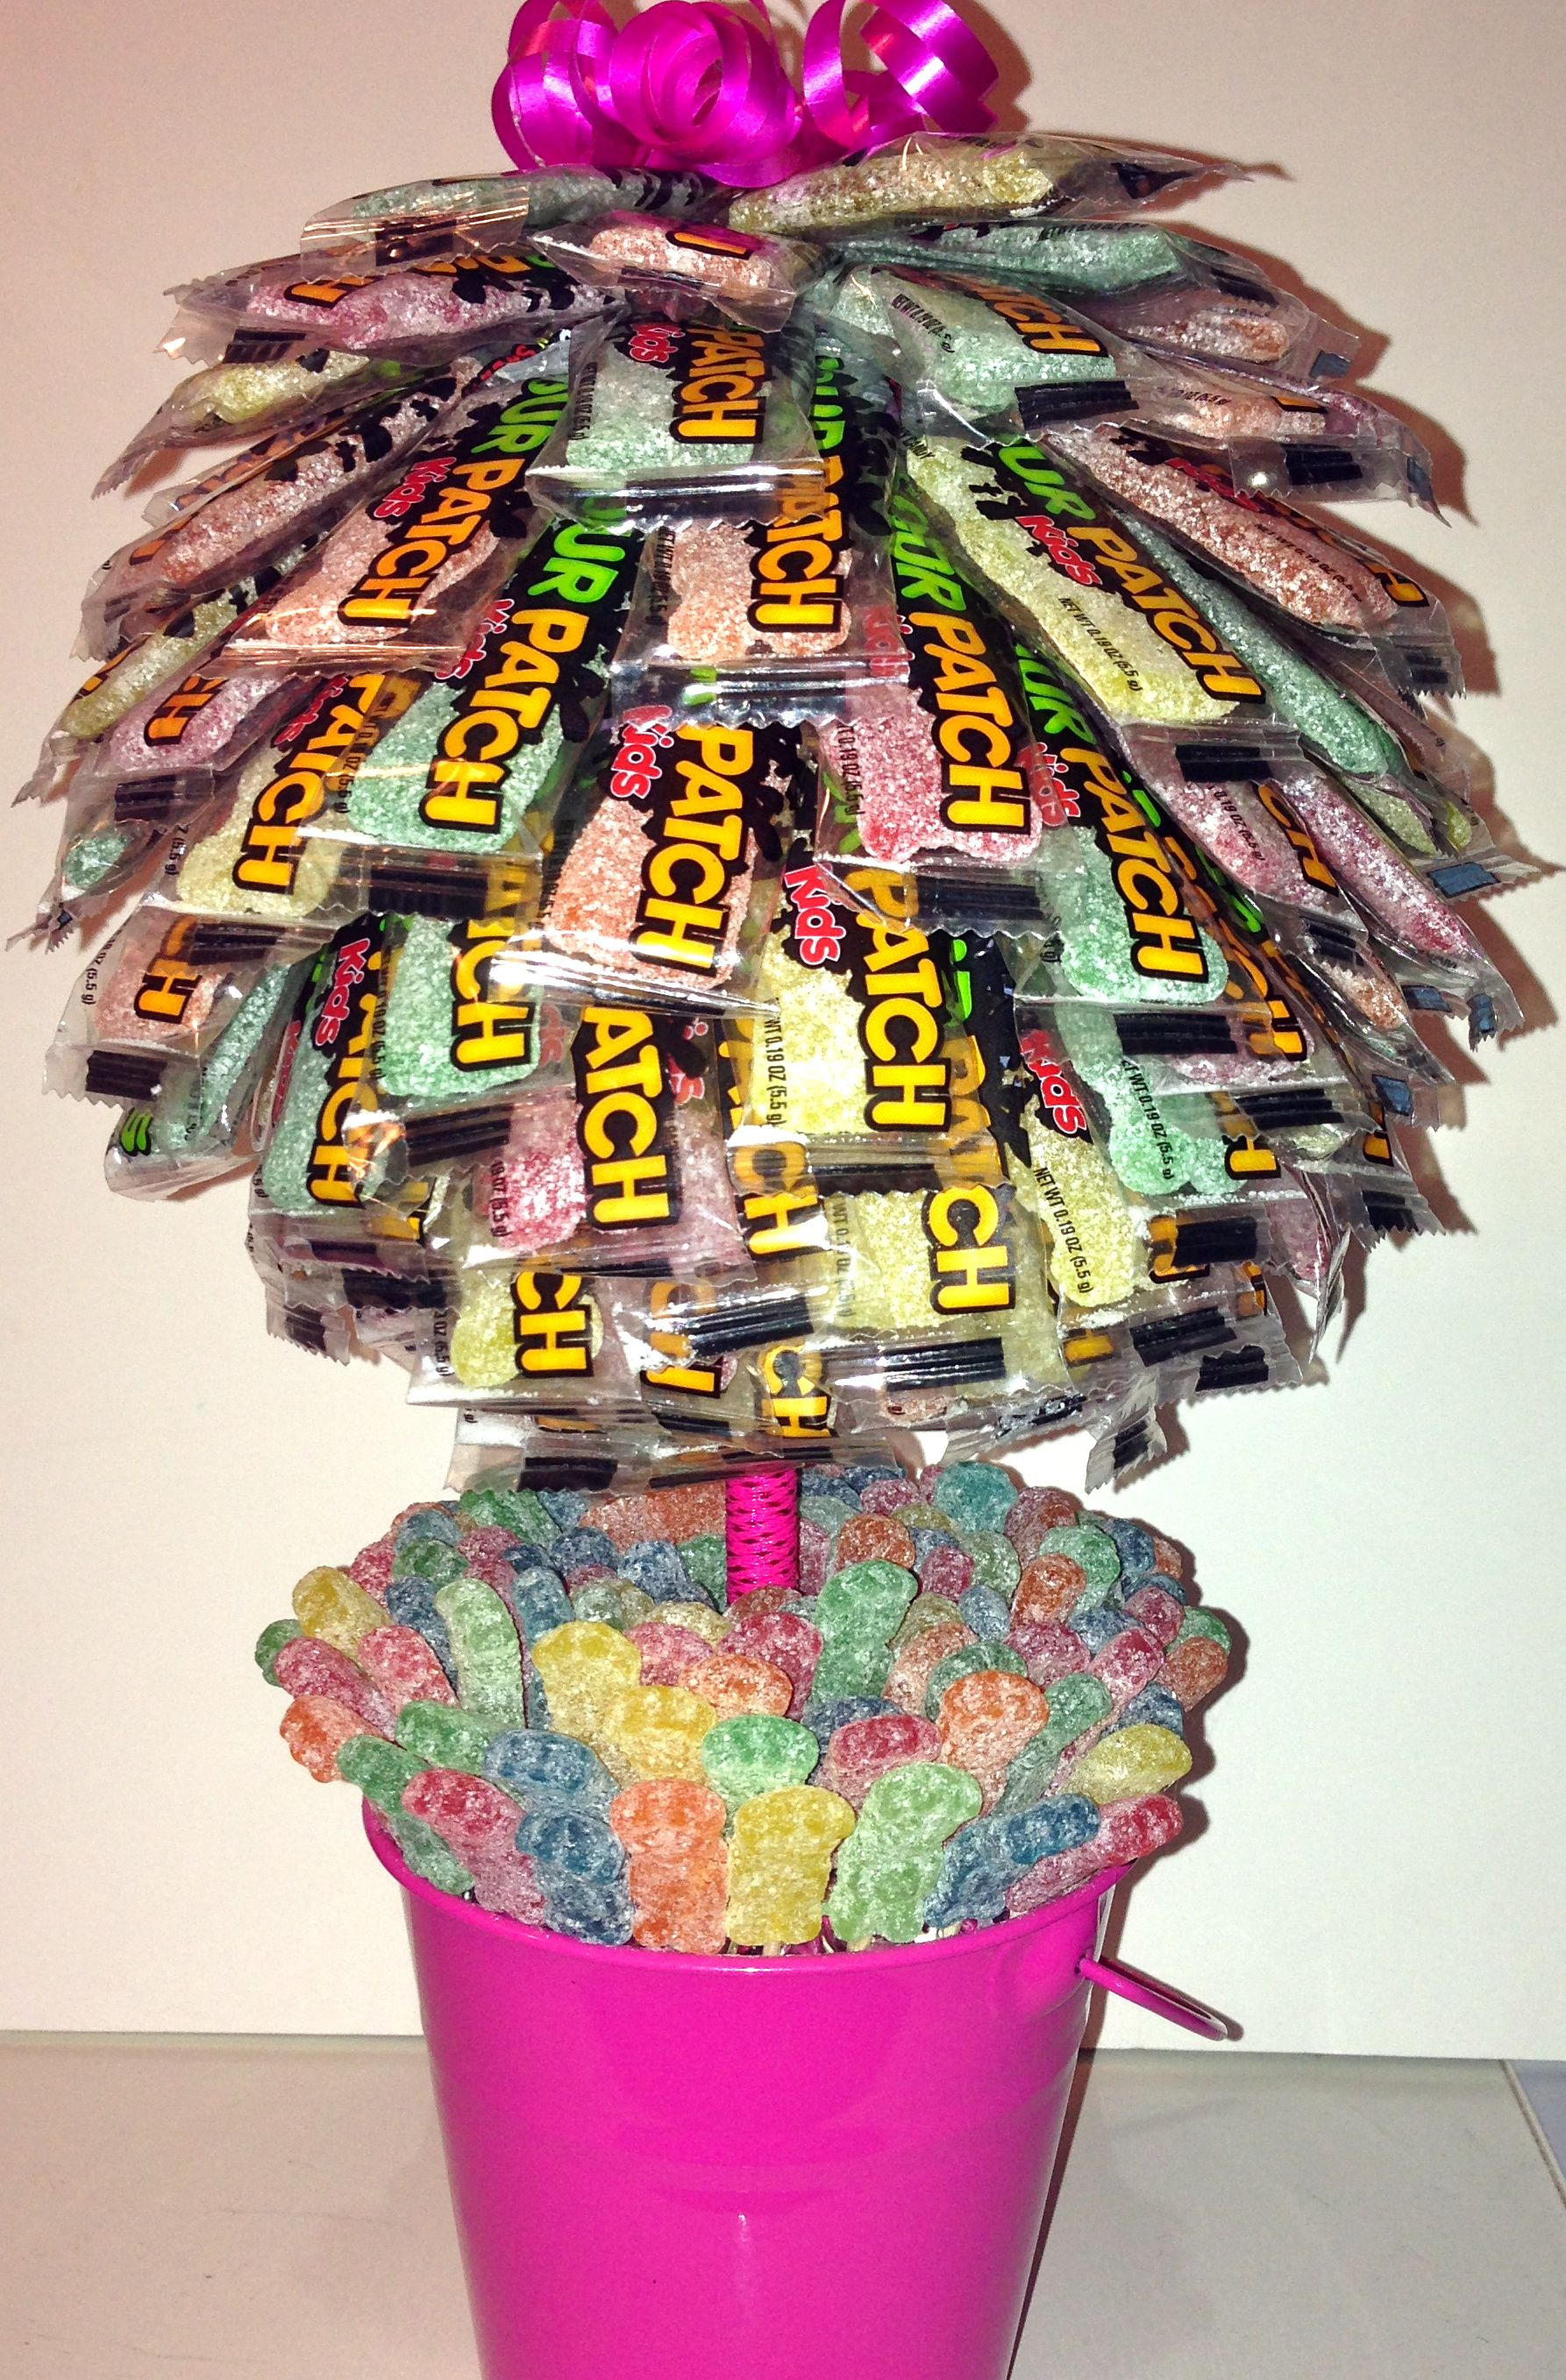 Pin By Tiana Agathos On Candy Topiary By T Sour Patch Kids Gift Diy Gifts For Kids Sour Patch Kids